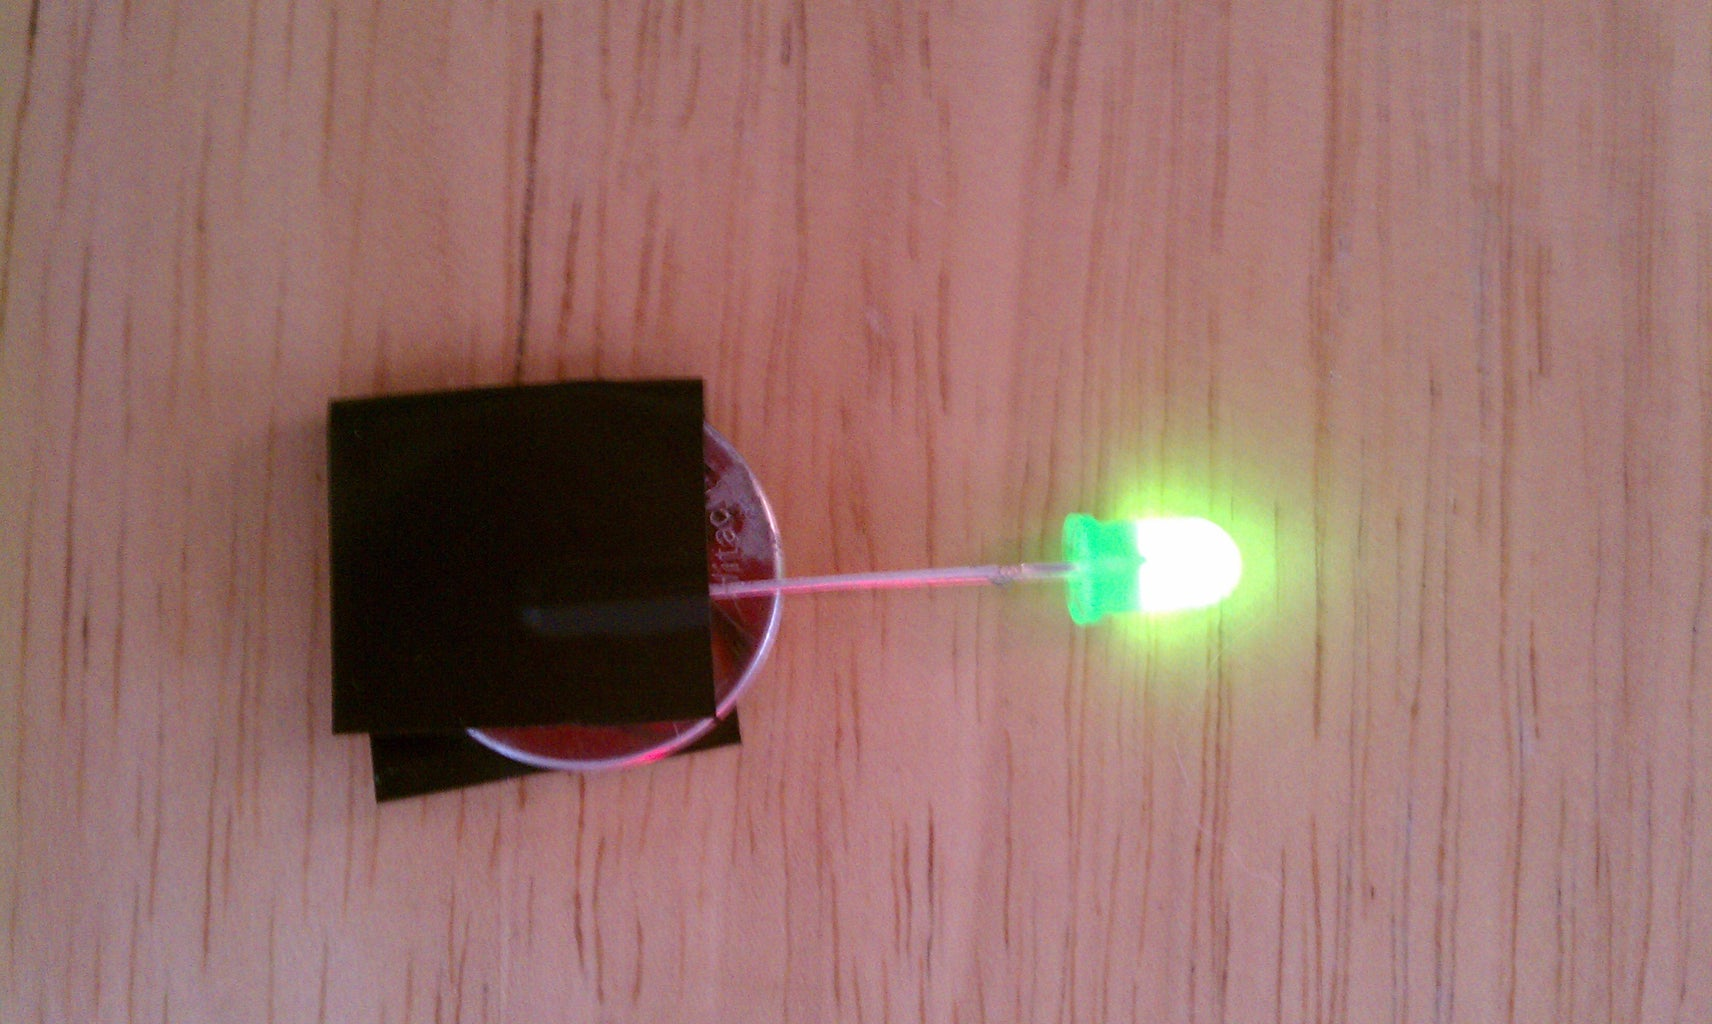 Testing and Securing the LEDs